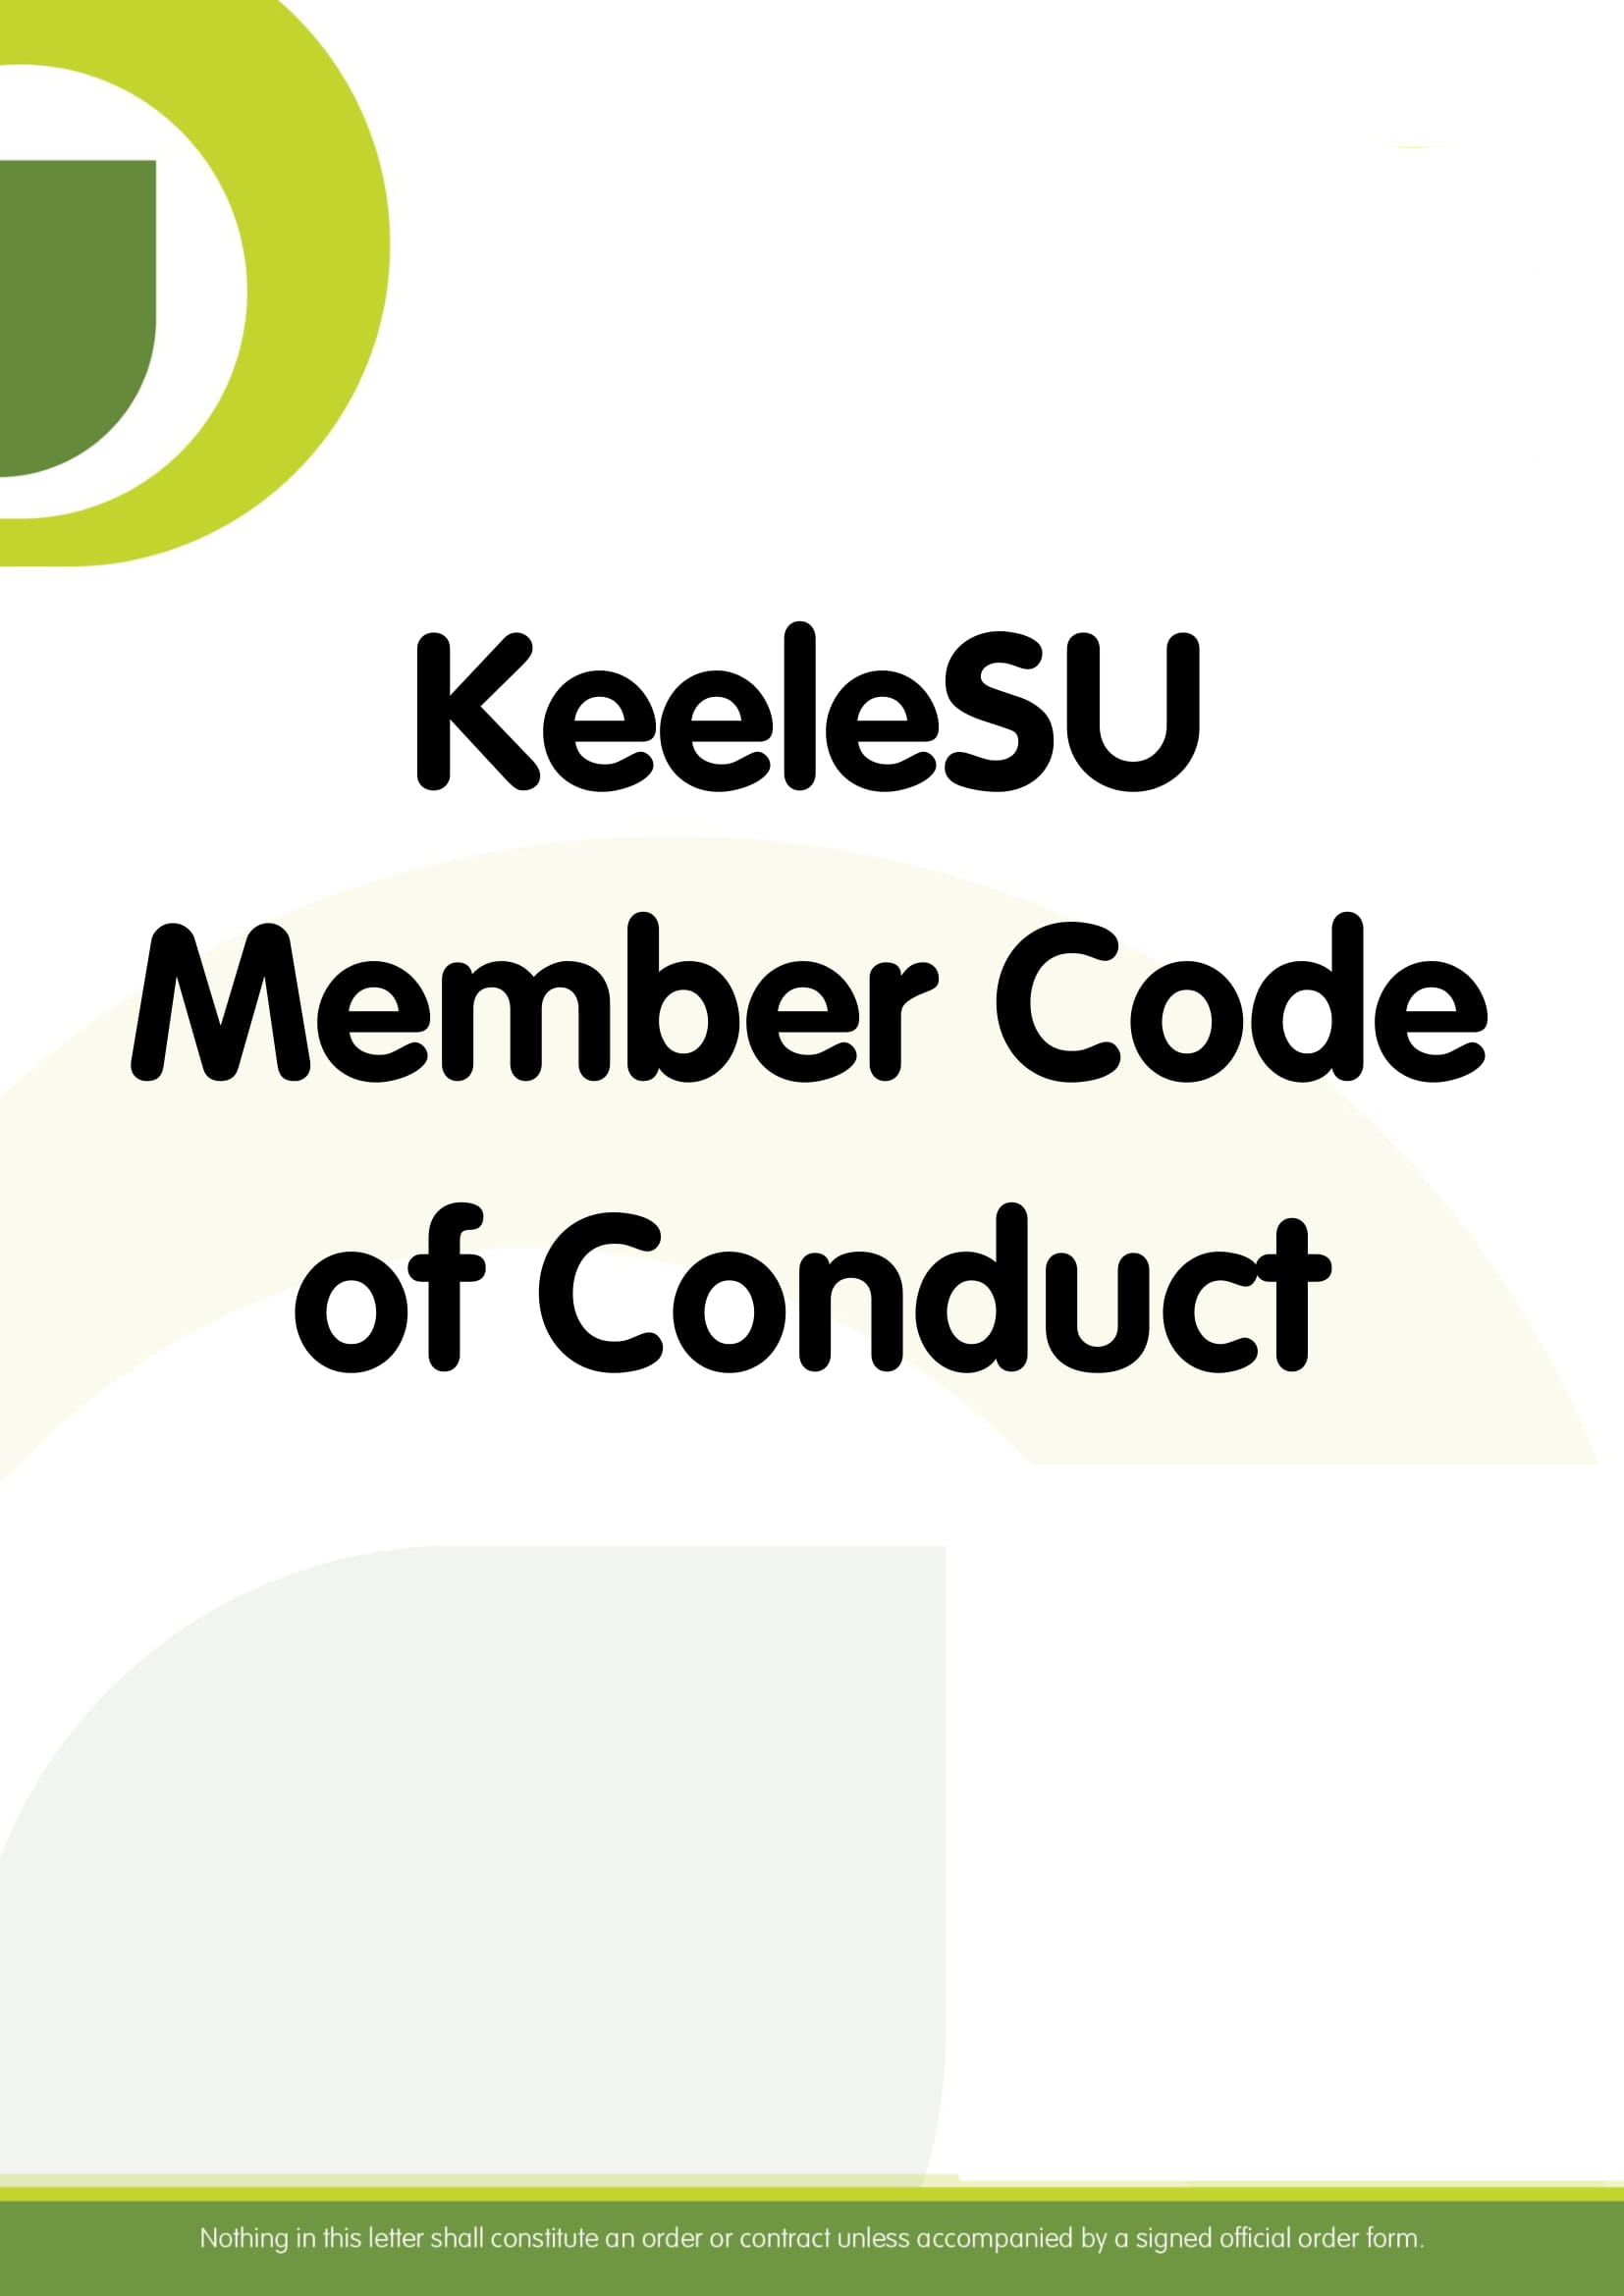 KeeleSU Member Code of Conduct